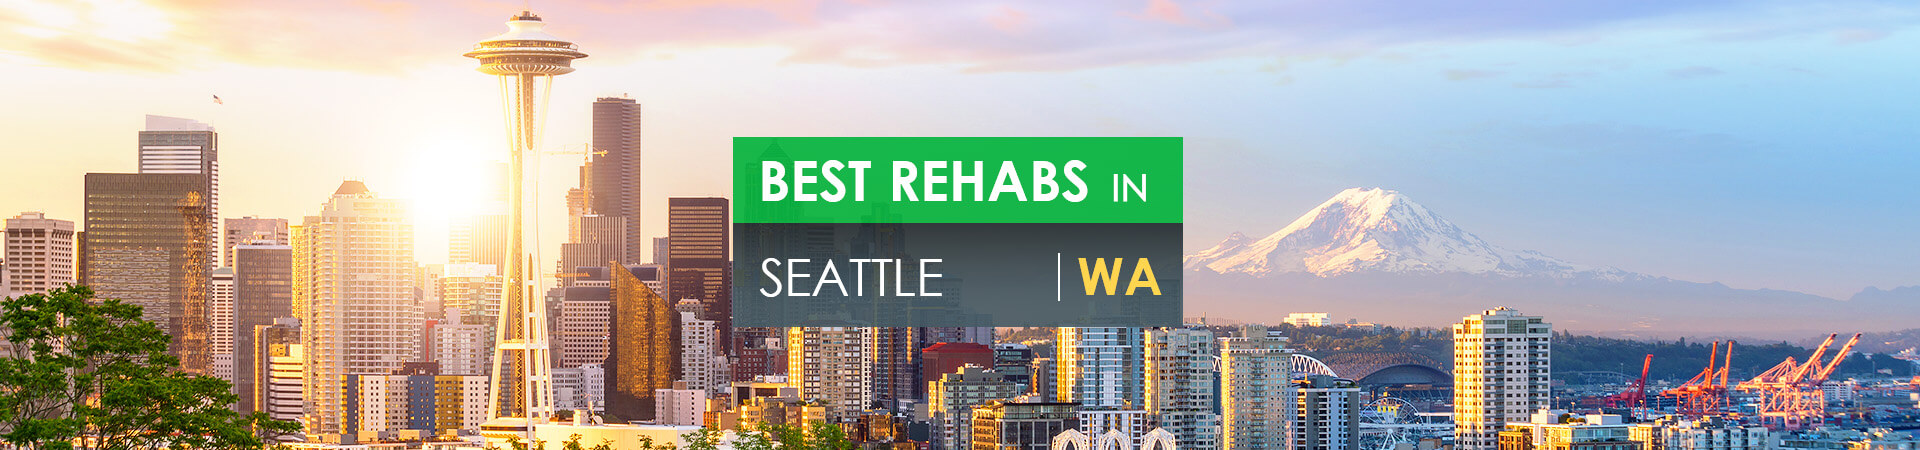 Best rehabs in Seattle, WA